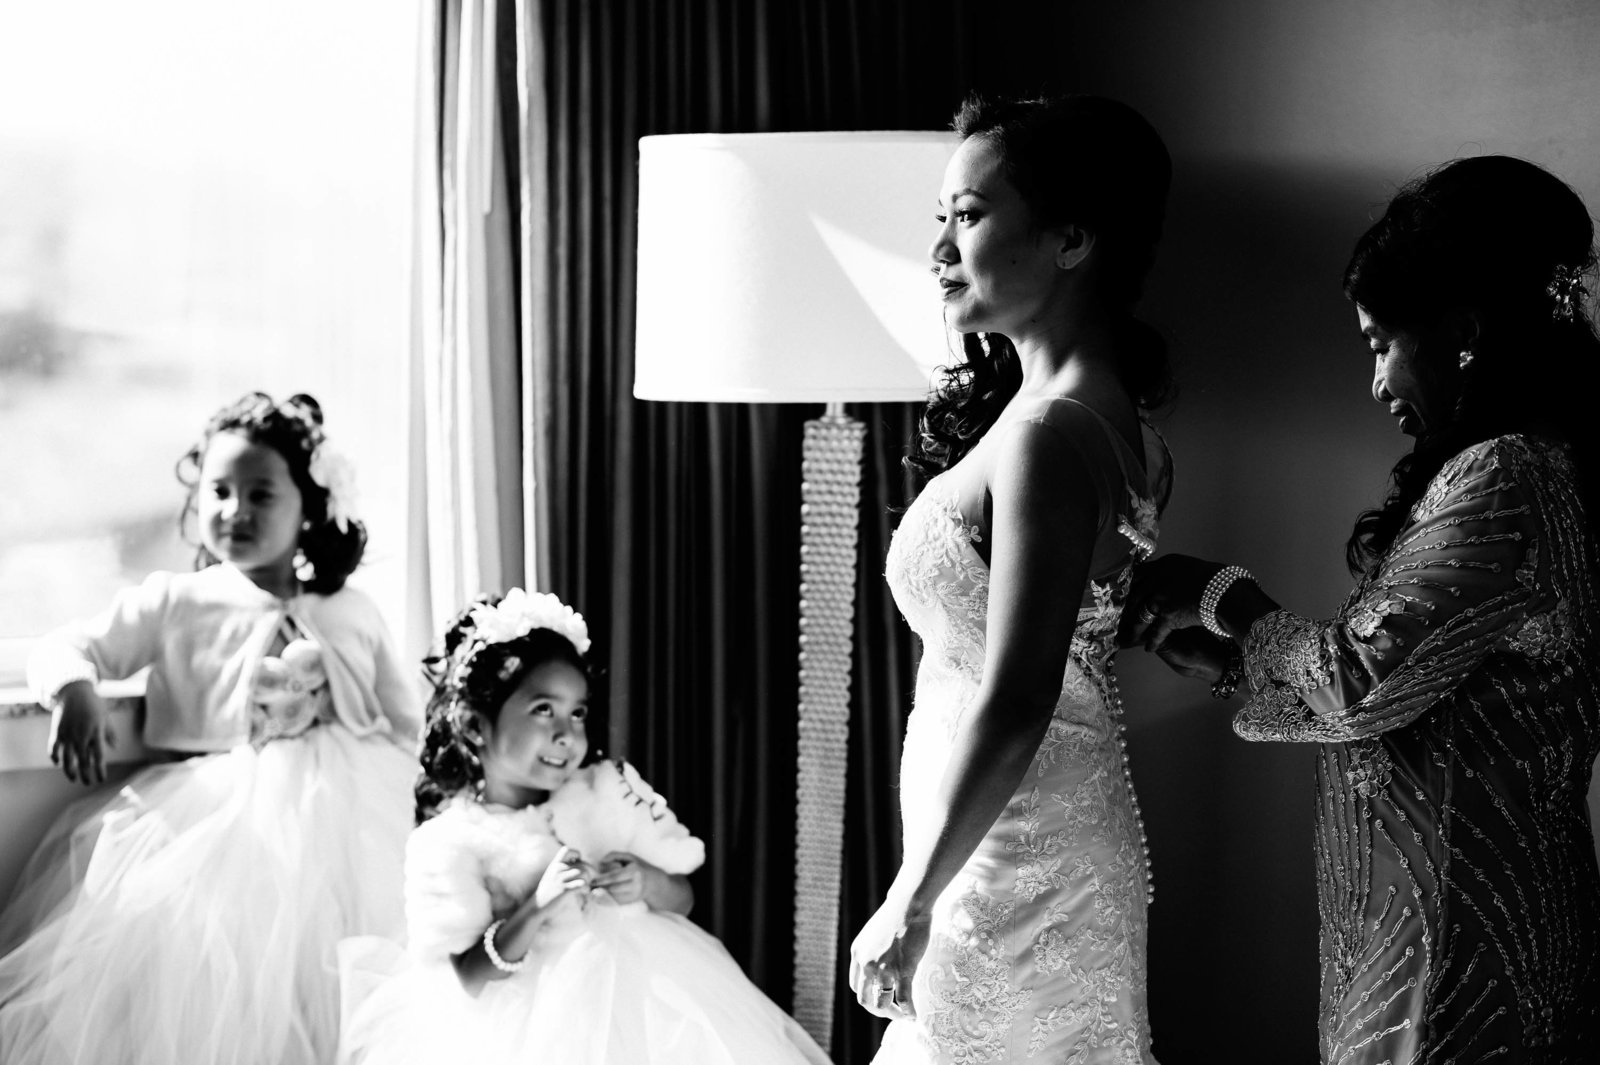 147-El-paso-wedding-photographer-JeMa_0214